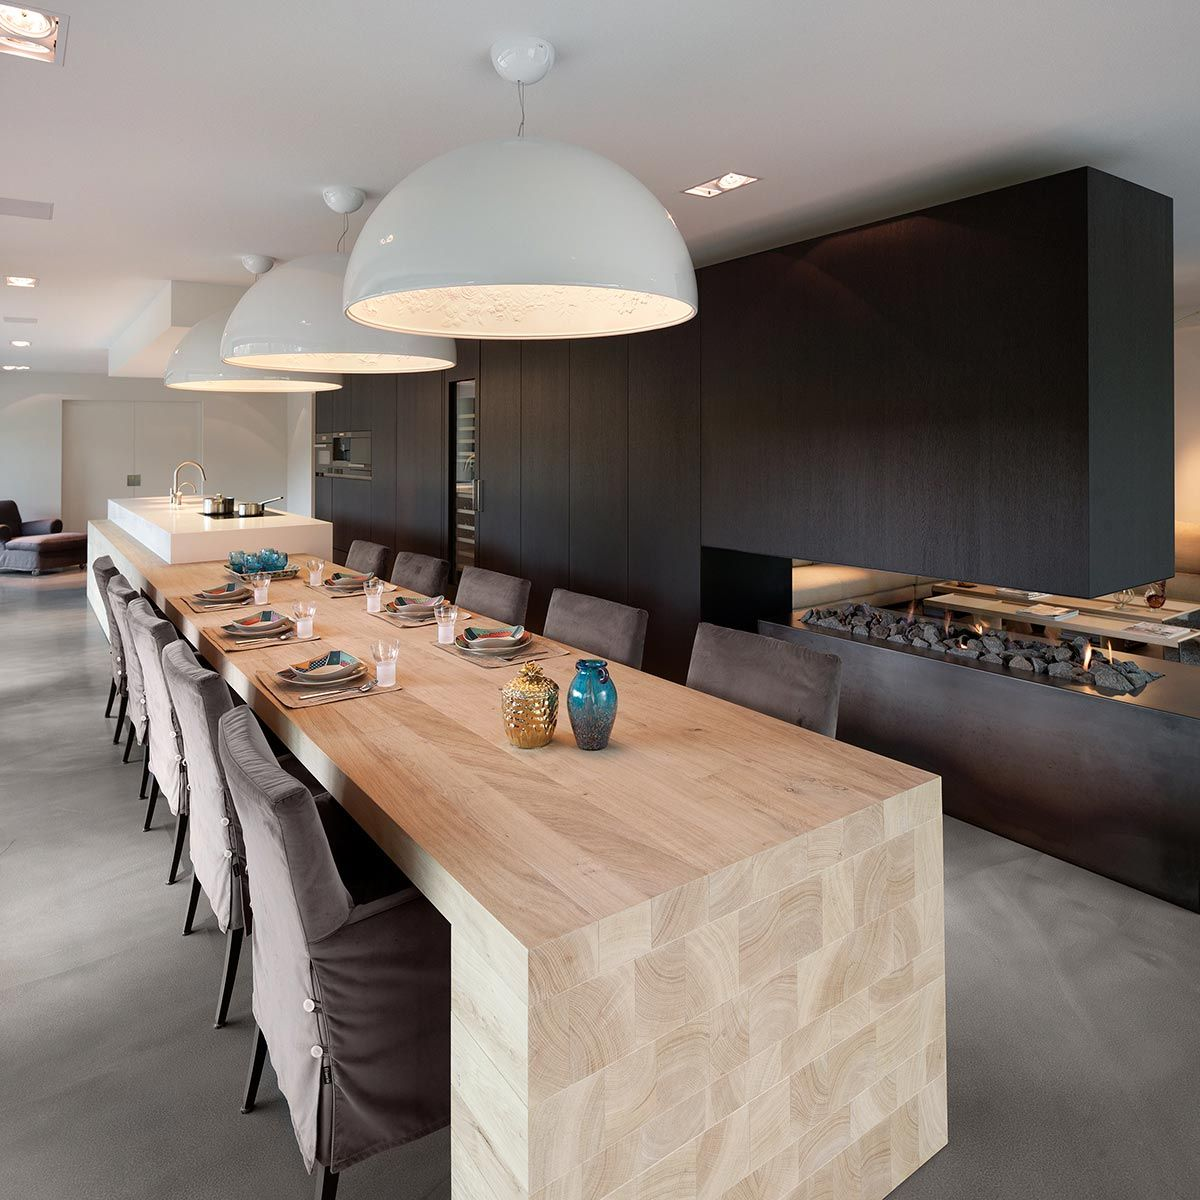 Woonhuis M residence makeover dining table pendant lamps